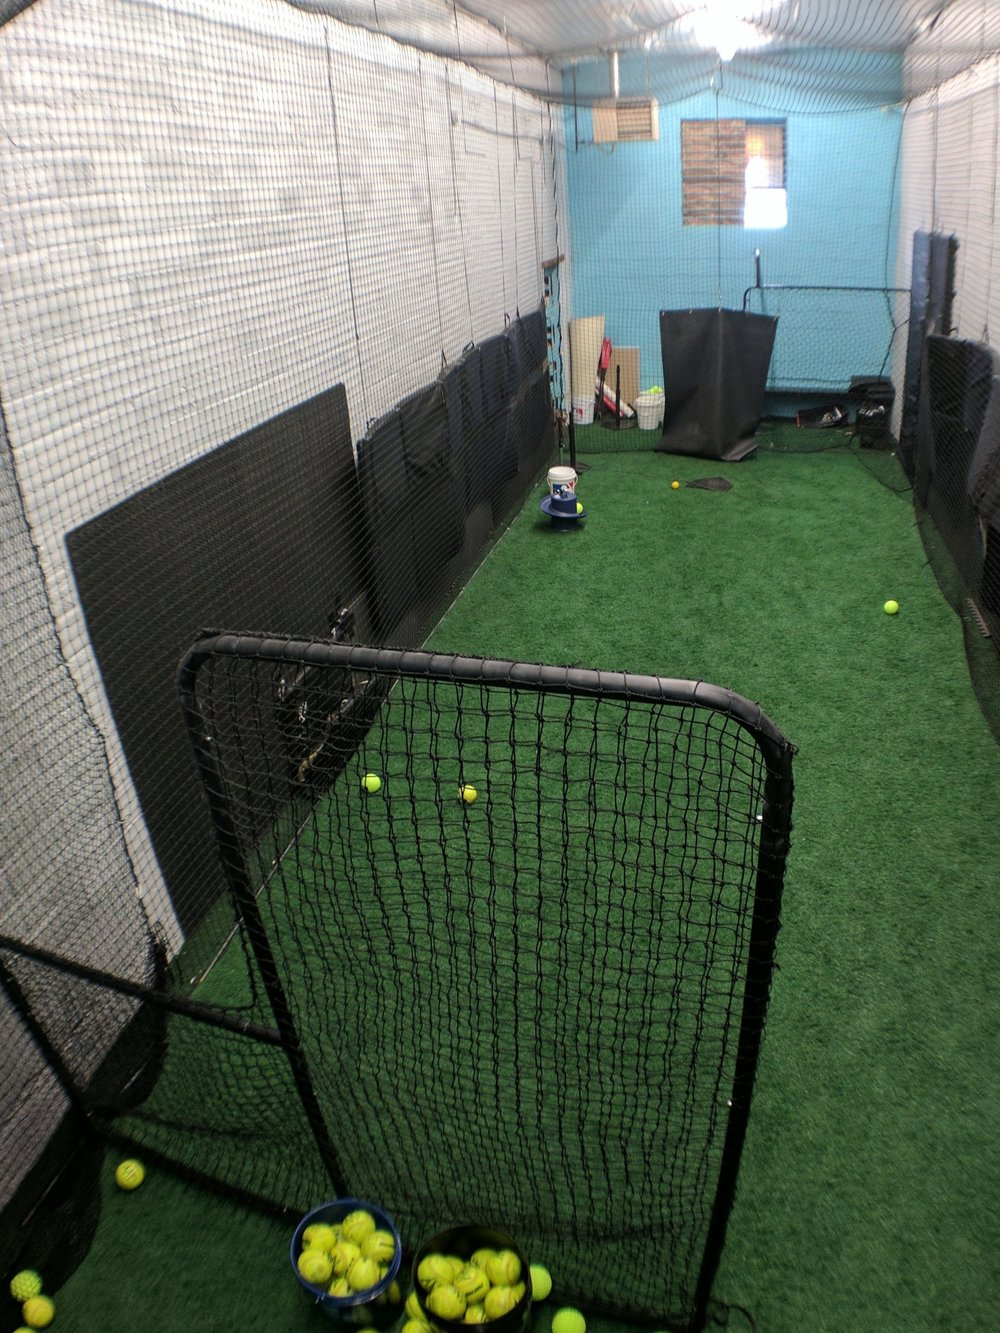 Great for Softball, Soft Toss, or Tee Work